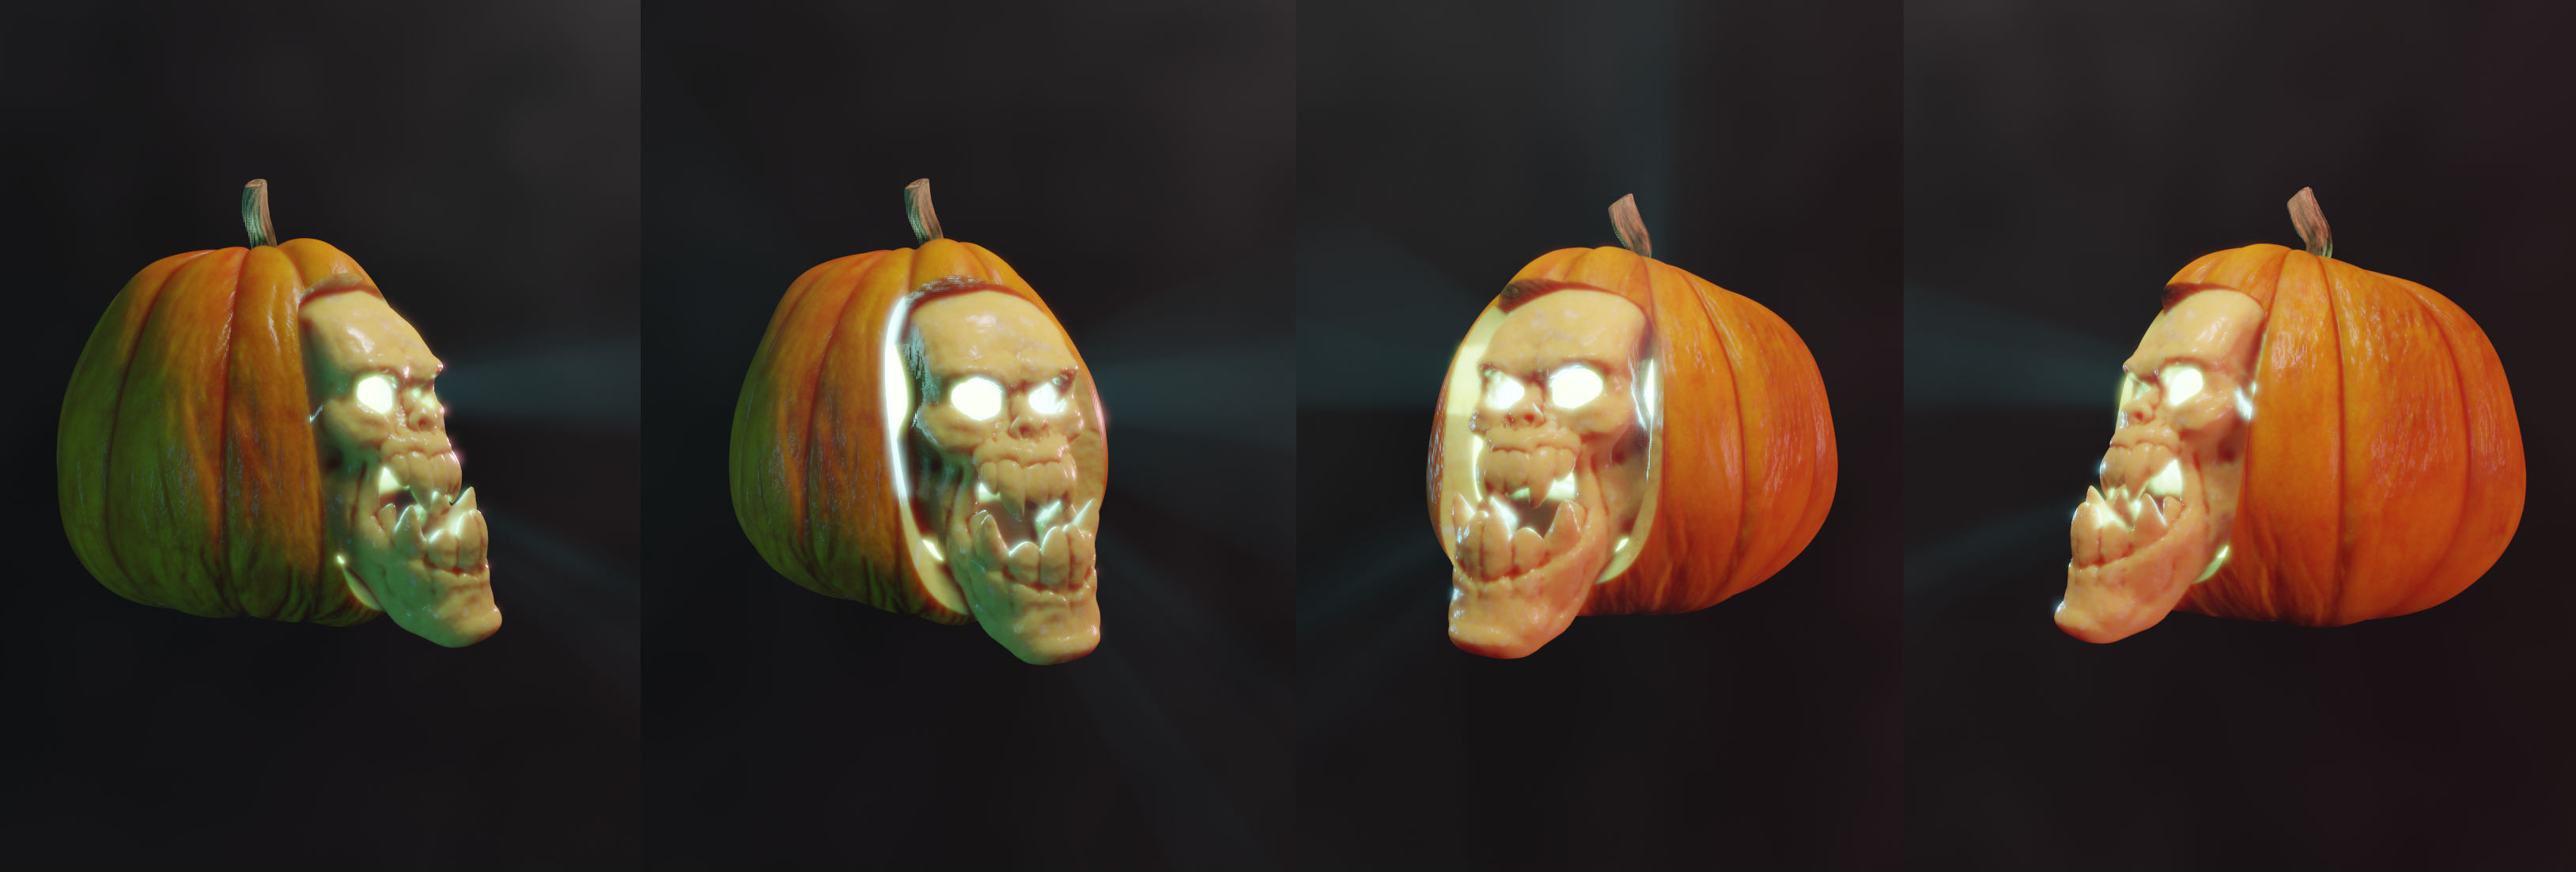 http://edge-loop.com/images/blender/PumpkinSkull_eevee_01.jpg